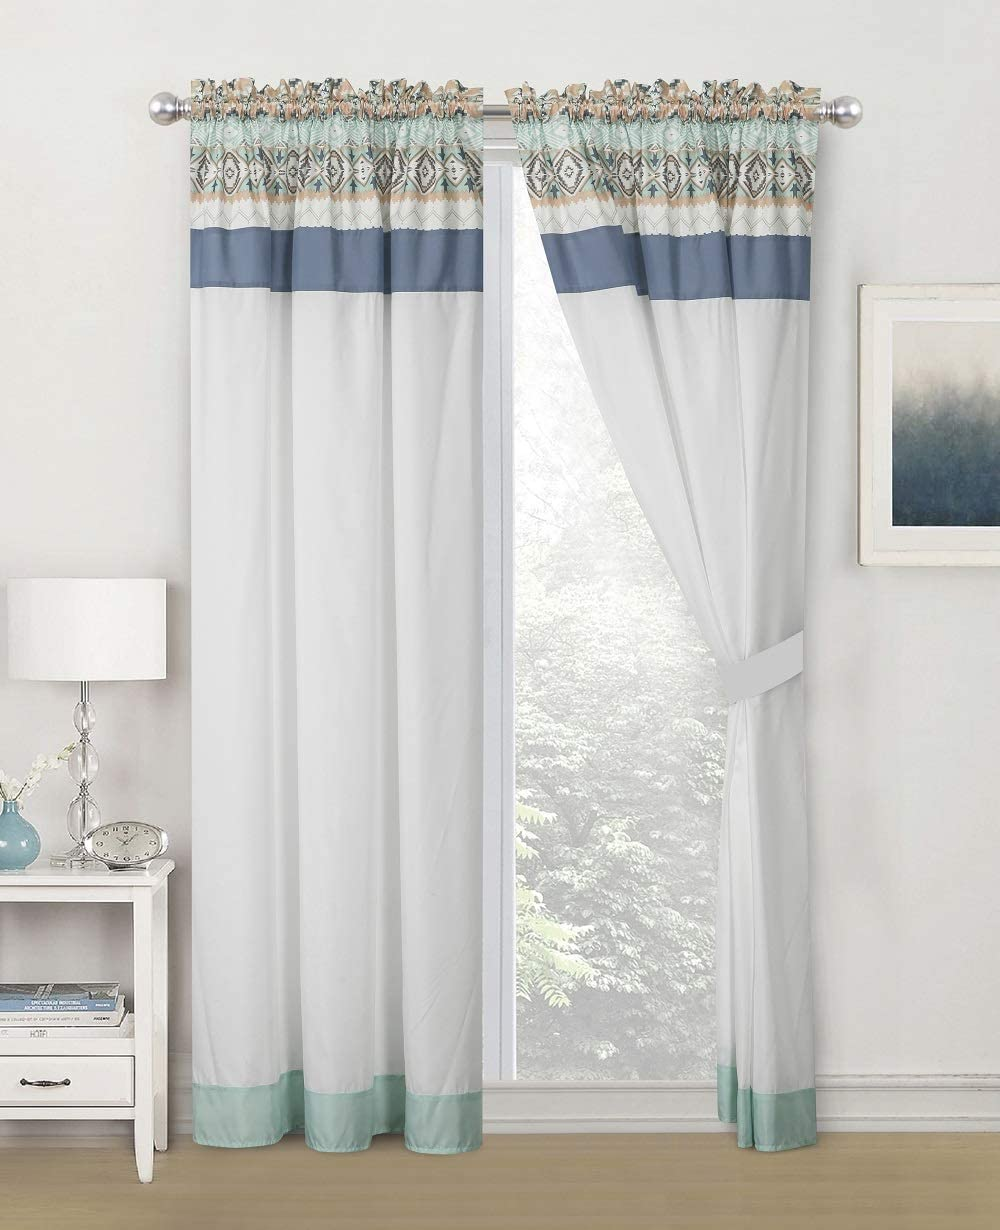 WPM WORLD PRODUCTS MART 4 Pieces Curtain Set: Light Teal Mint Green Blue Color Luxury Embroidery Panels Drapes with tie Backs for Southwestern Navajo Room Windows- Molly